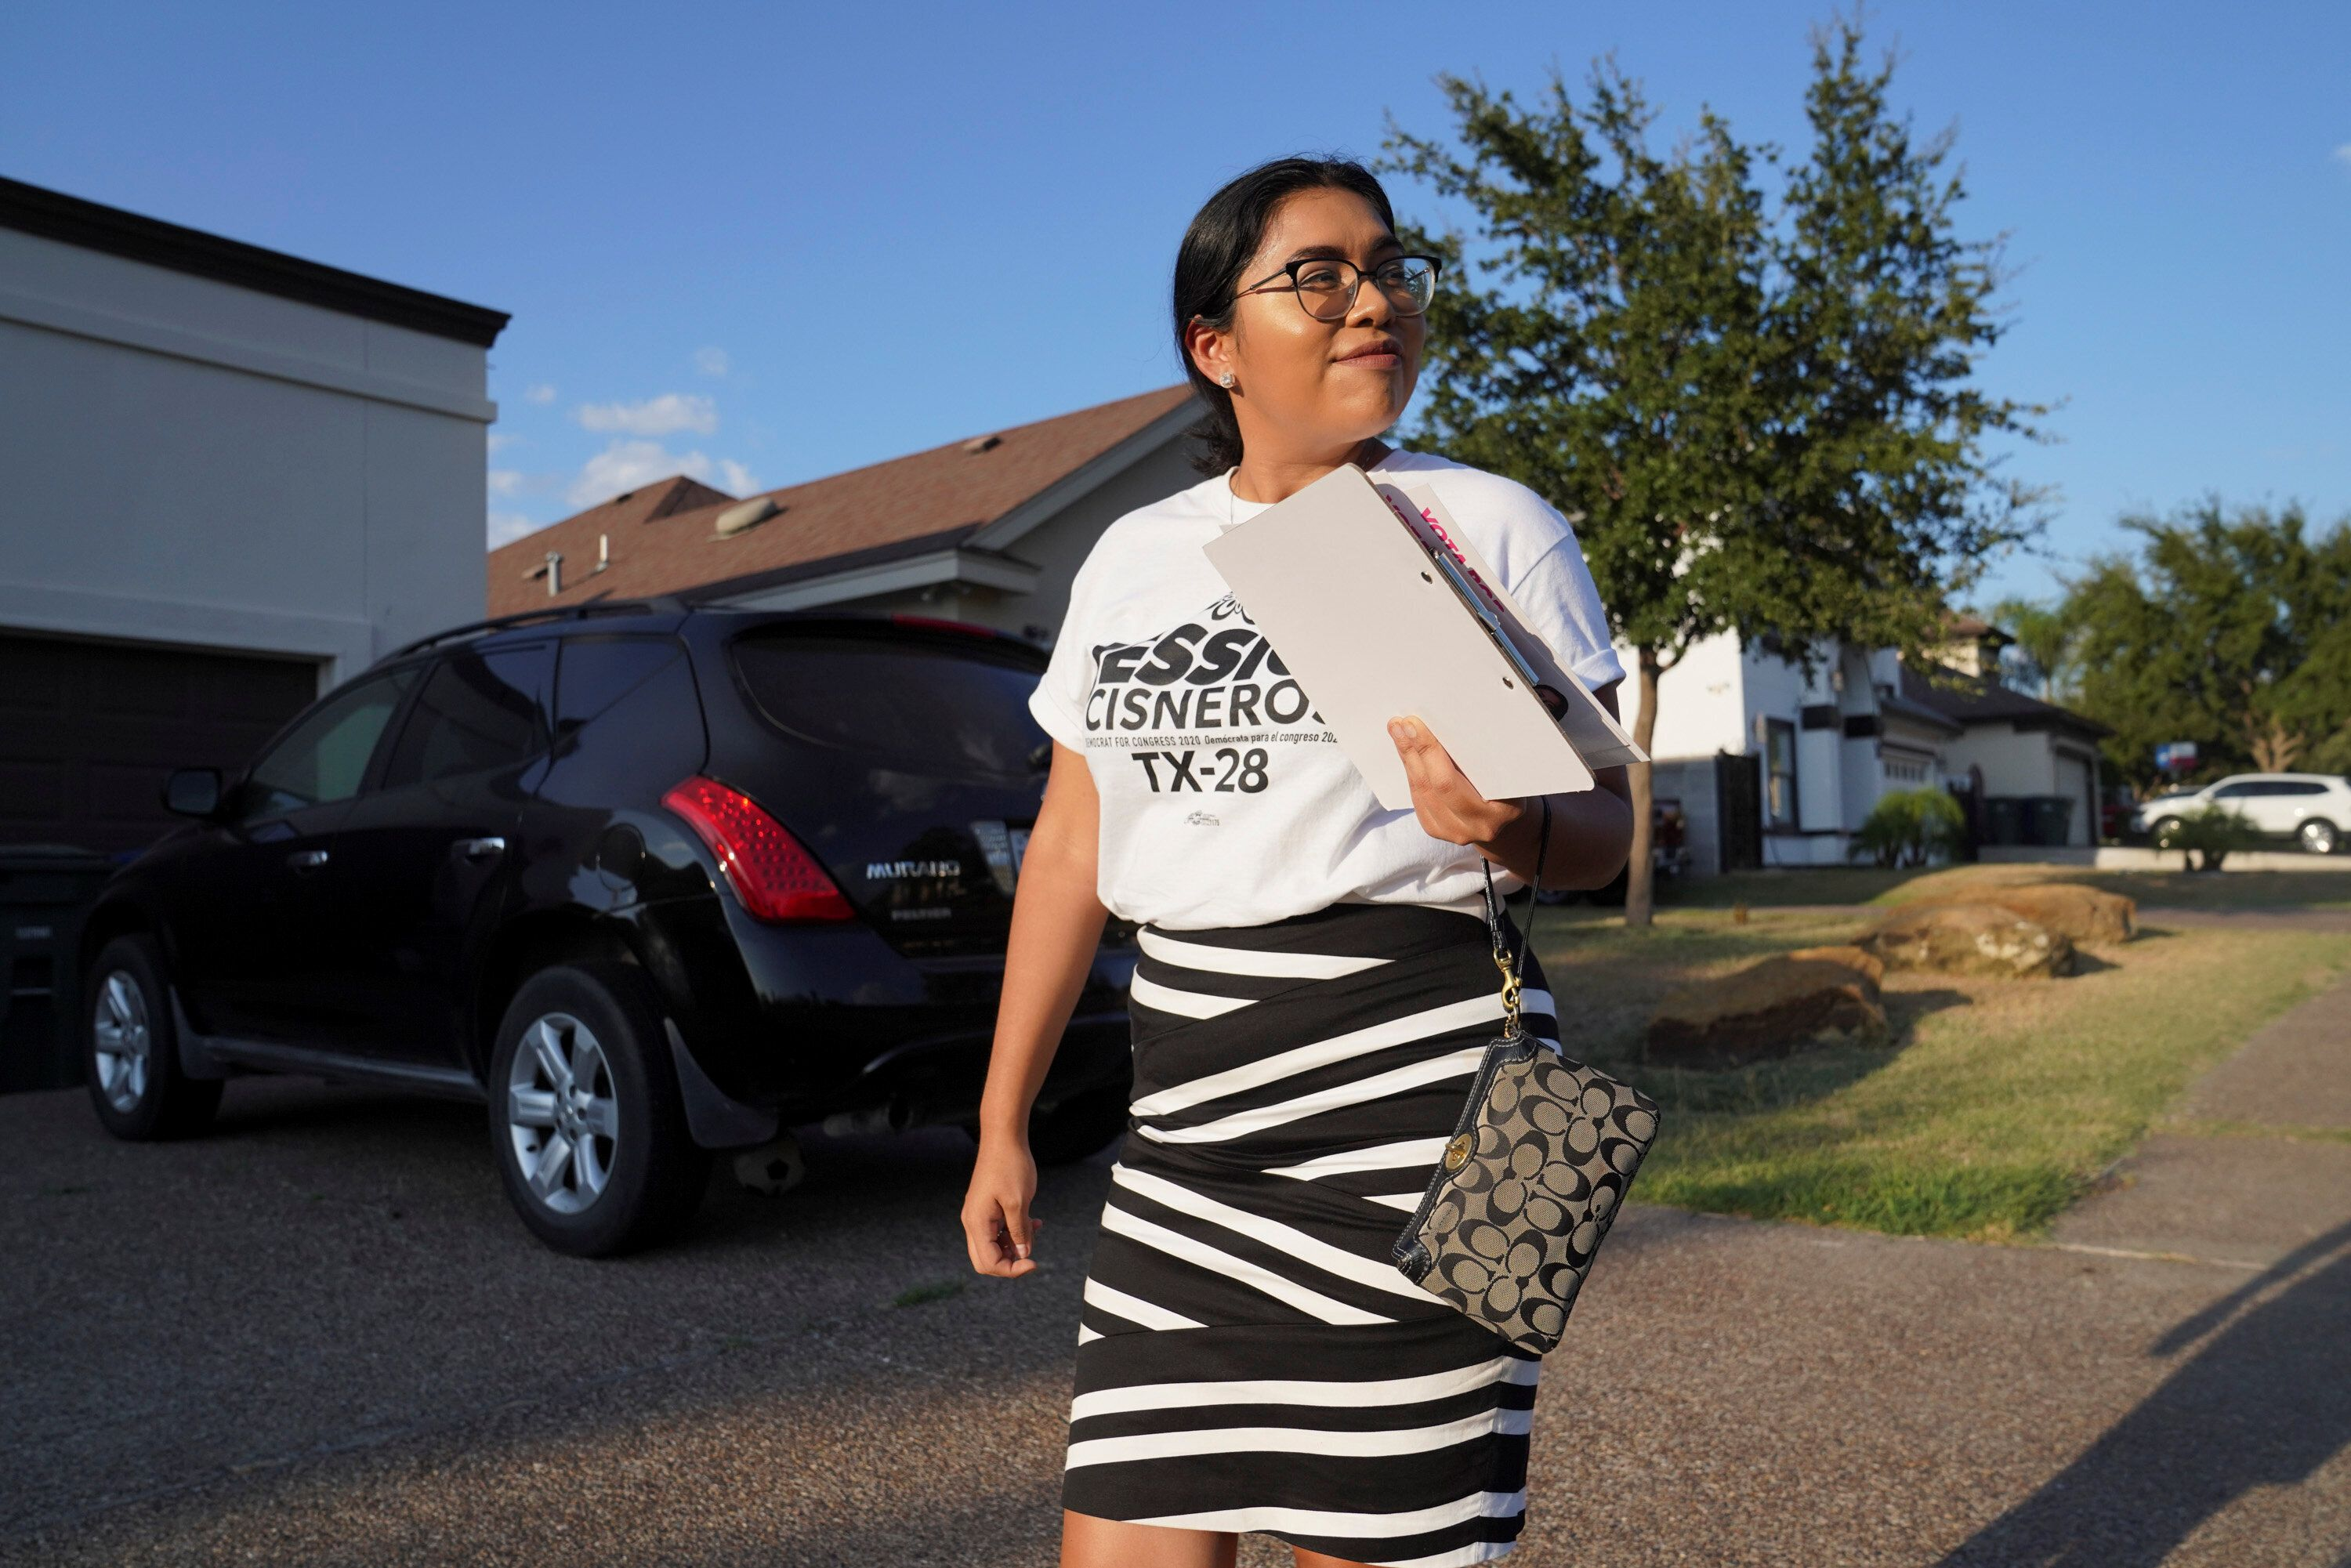 Democrat Jessica Cisneros campaigns for a House seat in Laredo, Texas, on Oct. 8. Ocasio-Cortez is the first sitting House me